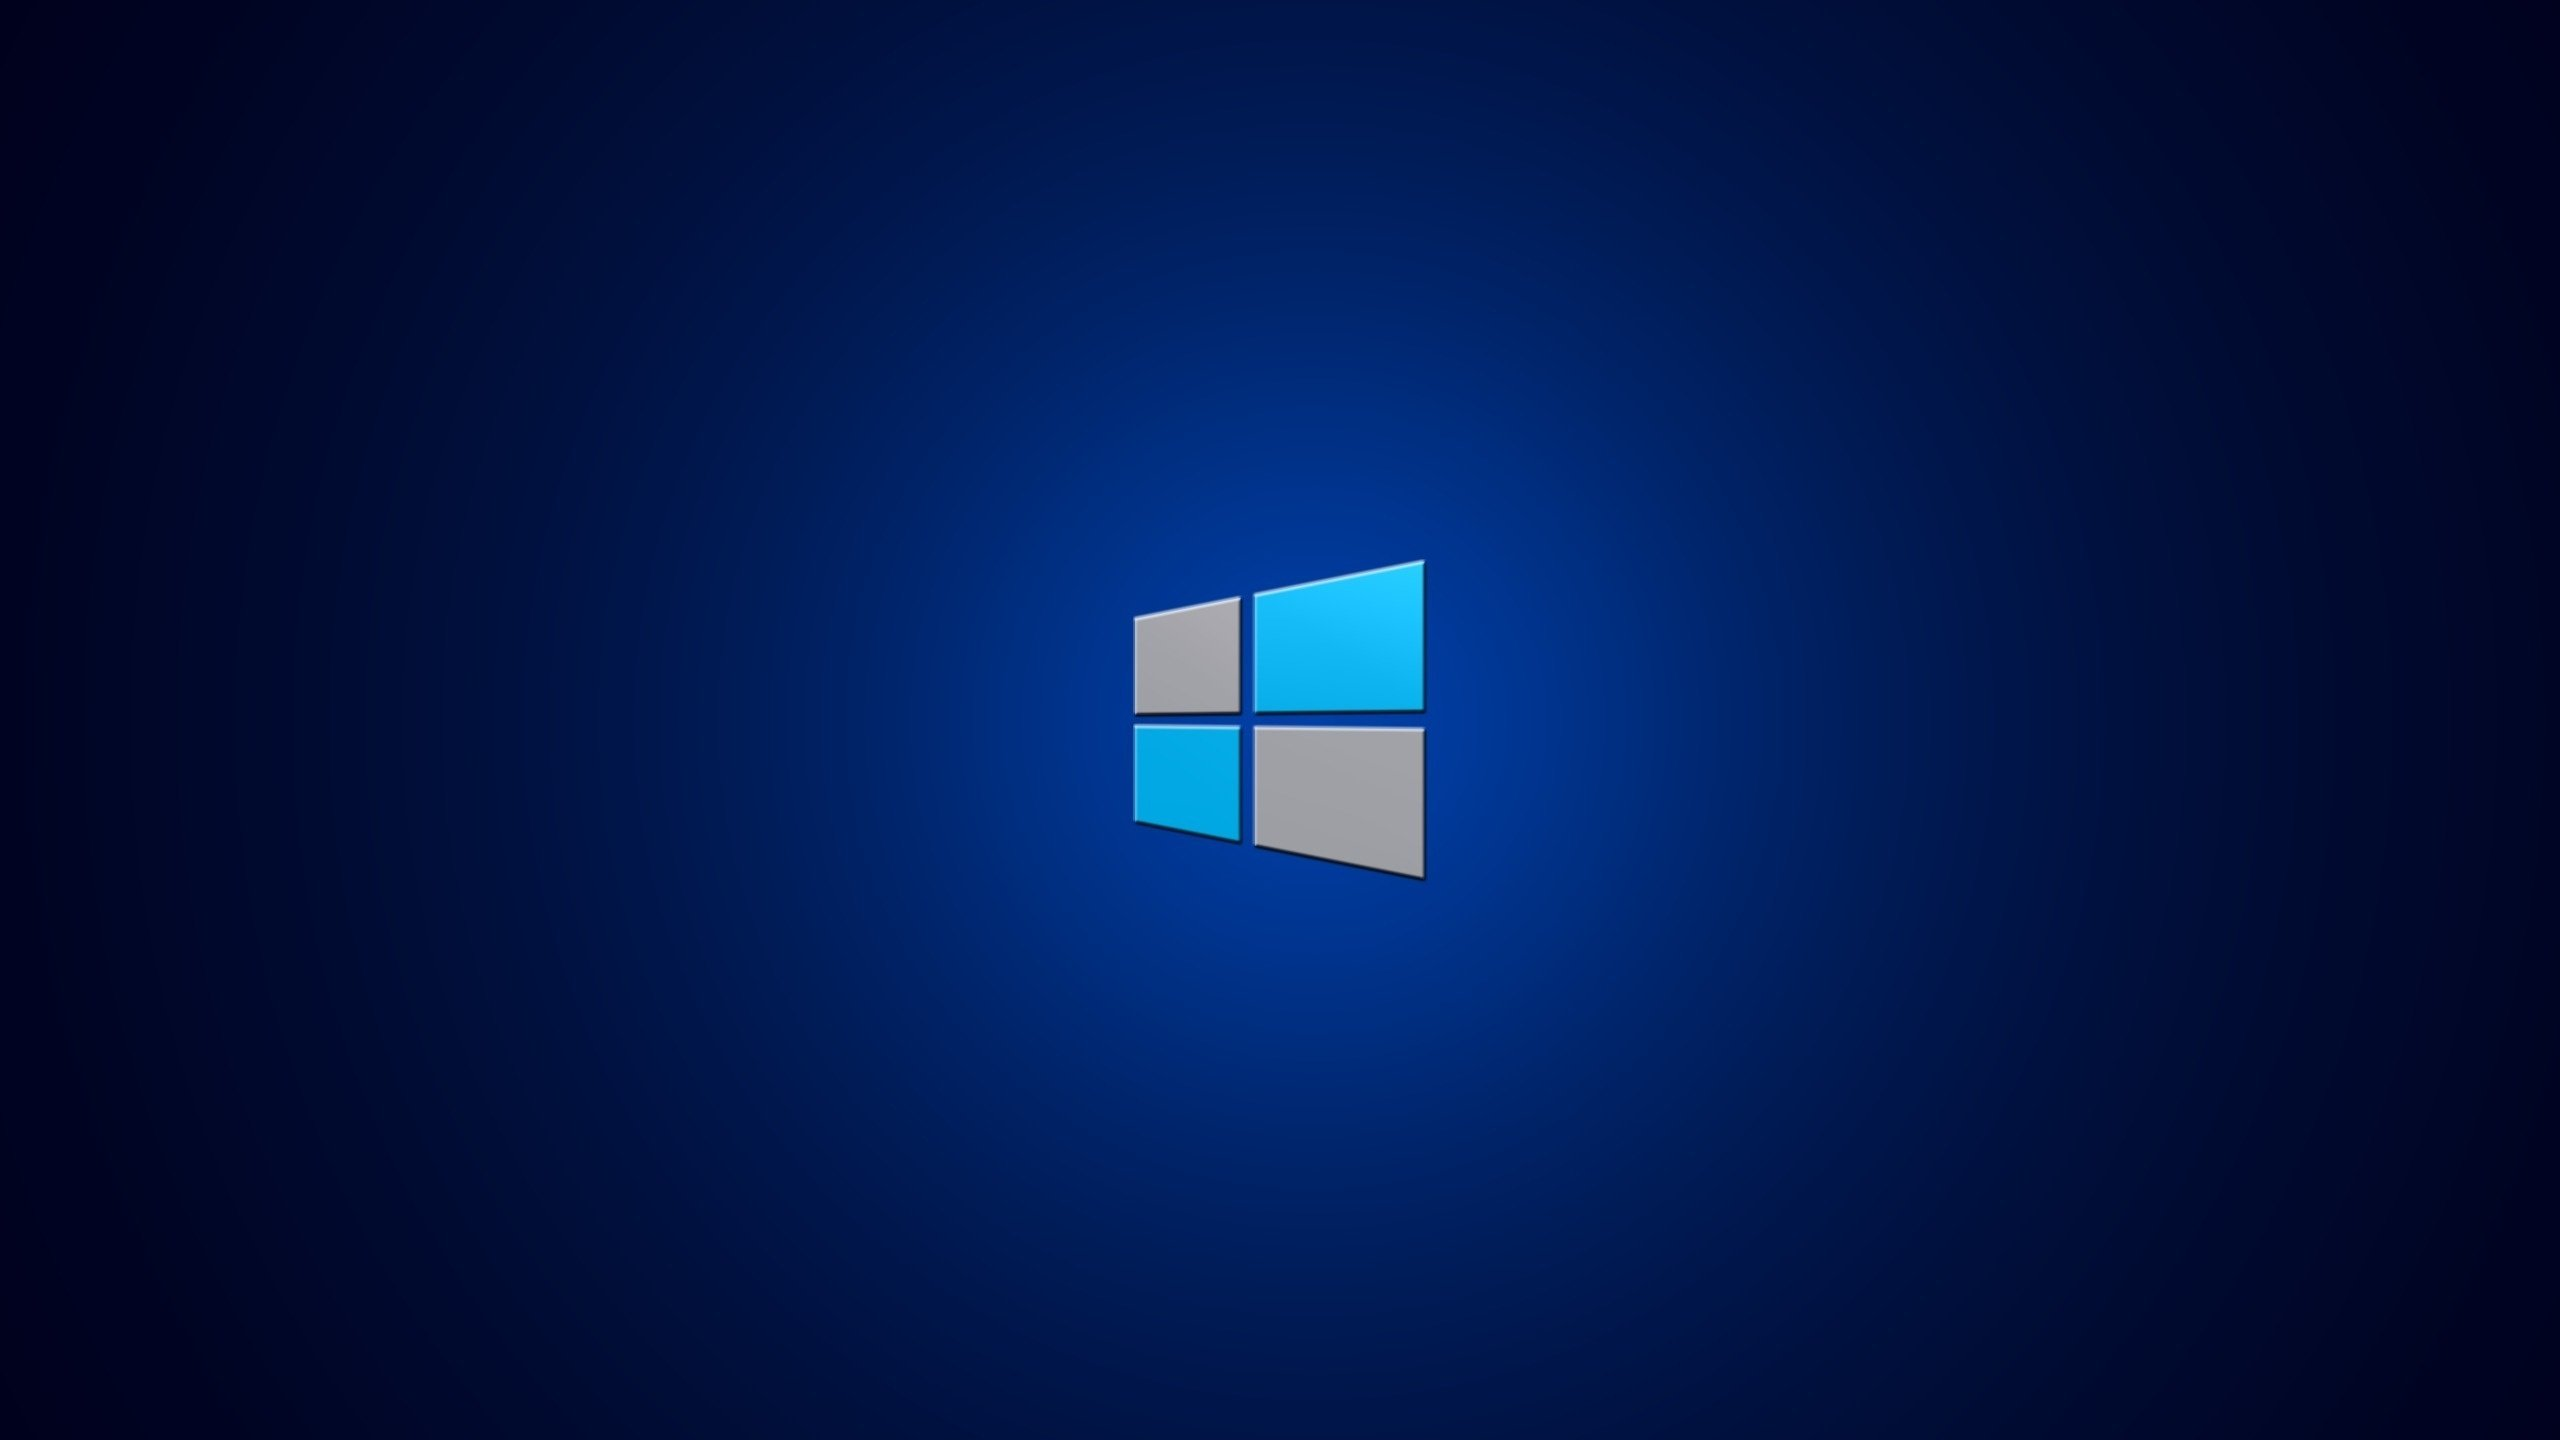 Windows 8 Background   2560x1440   129499 2560x1440